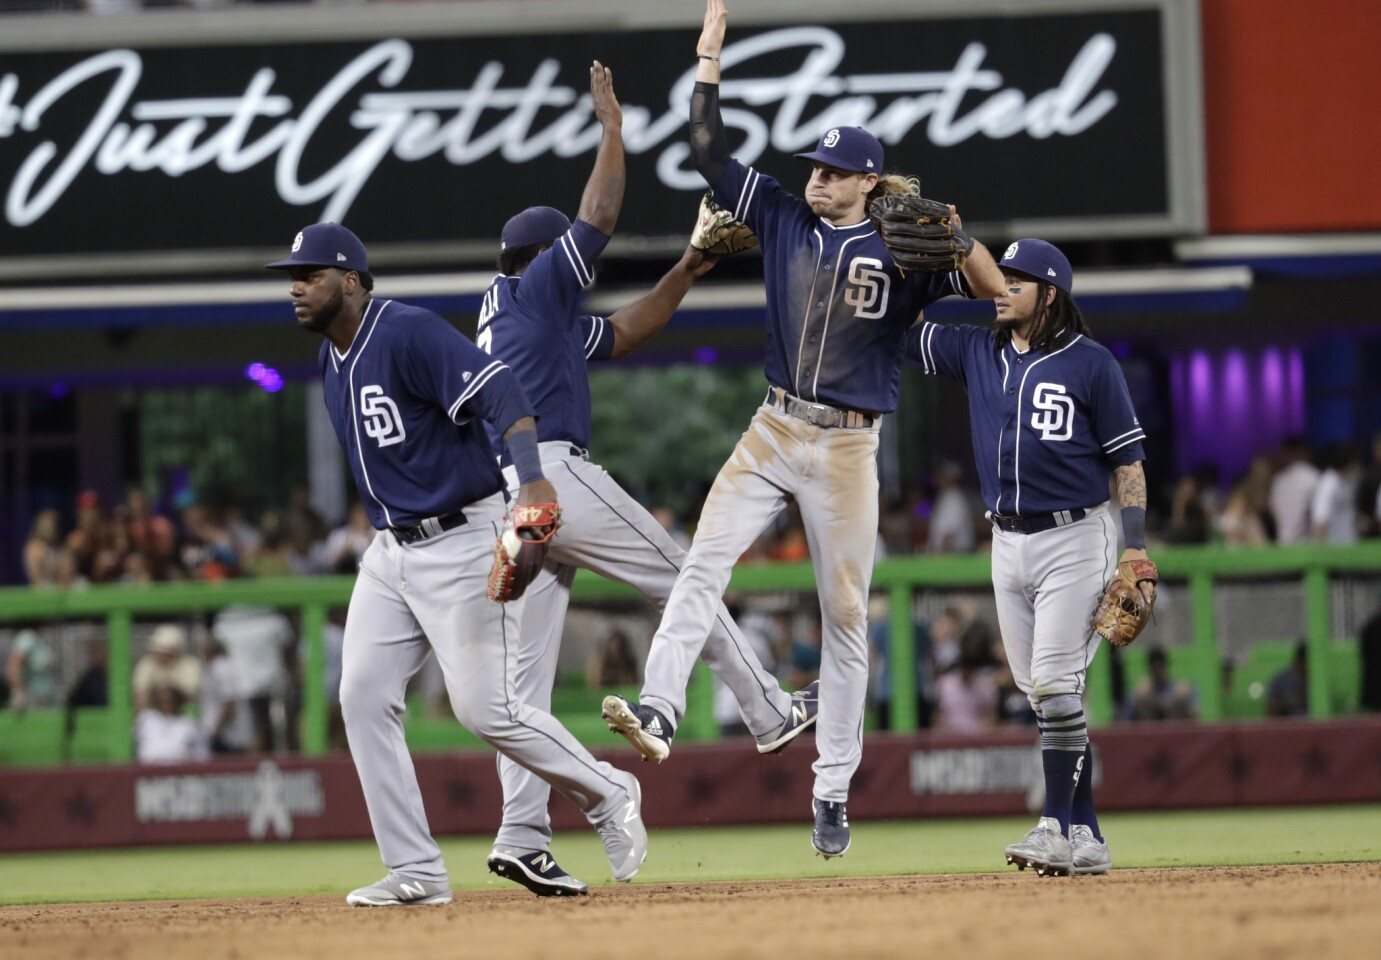 San Diego Padres left fielder Travis Jankowski, second from right, high fives second baseman Jose Pirela, second from left, after defeating the Miami Marlins 5-4 in a baseball game, Saturday, June 9, 2018, in Miami. (AP Photo/Lynne Sladky)